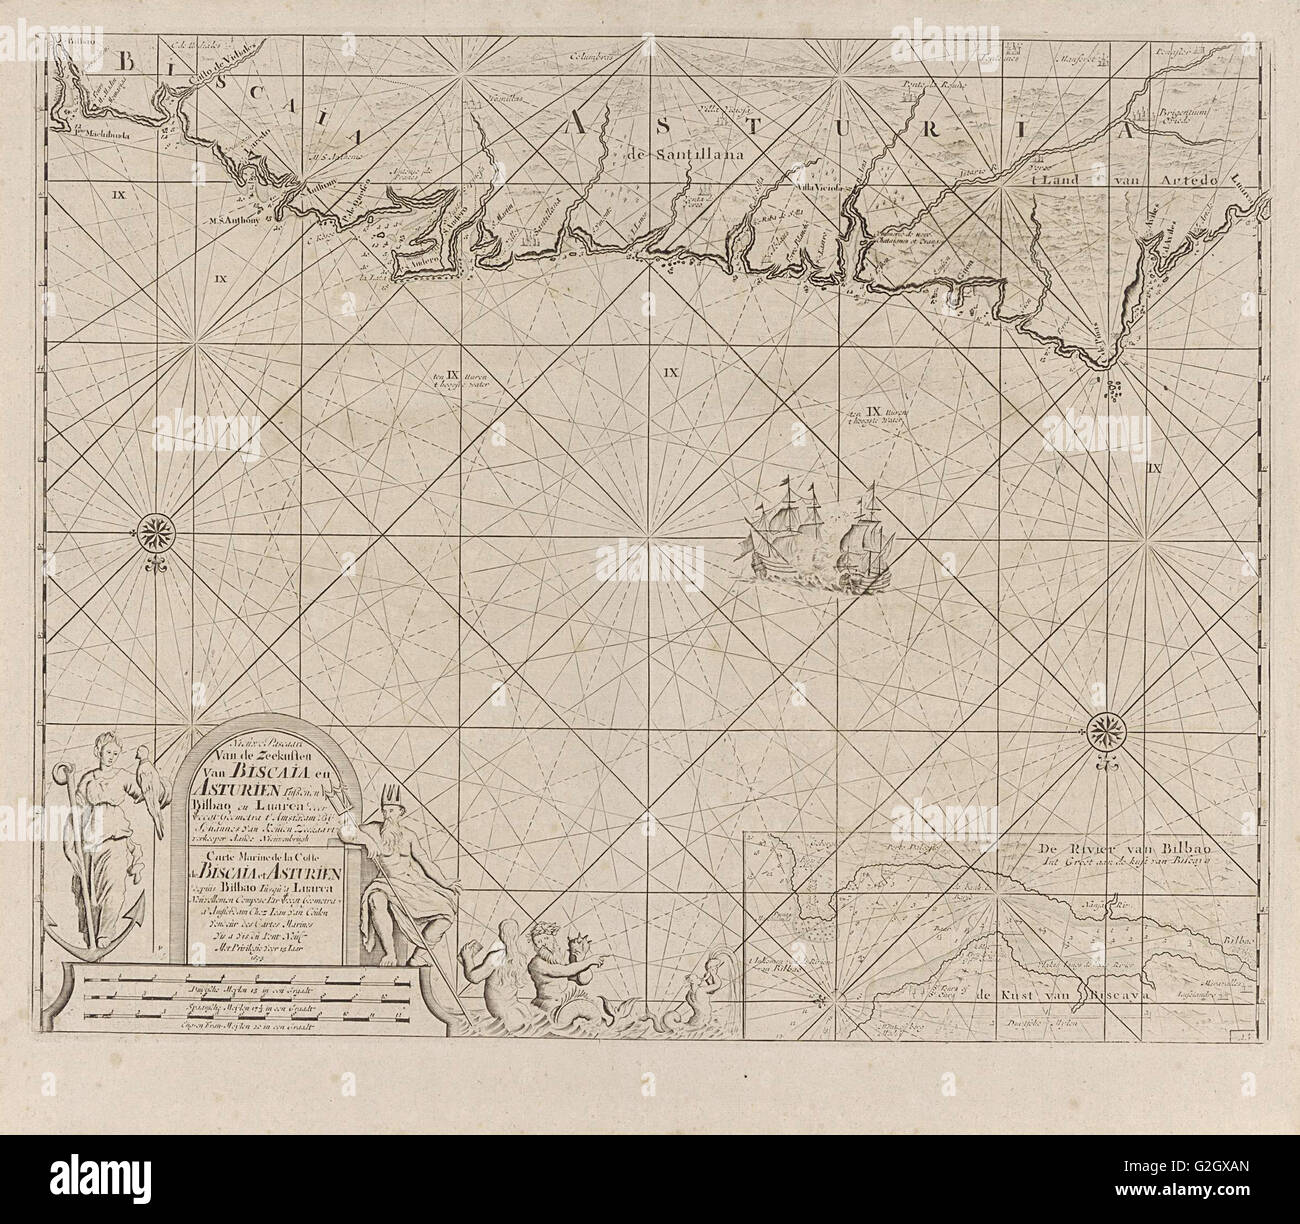 Sea chart of a portion of the Bay of Biscay in Bilbao, Anonymous, Claes Jansz Voogt, Johannes van Keulen (II), 1734 - Stock Image